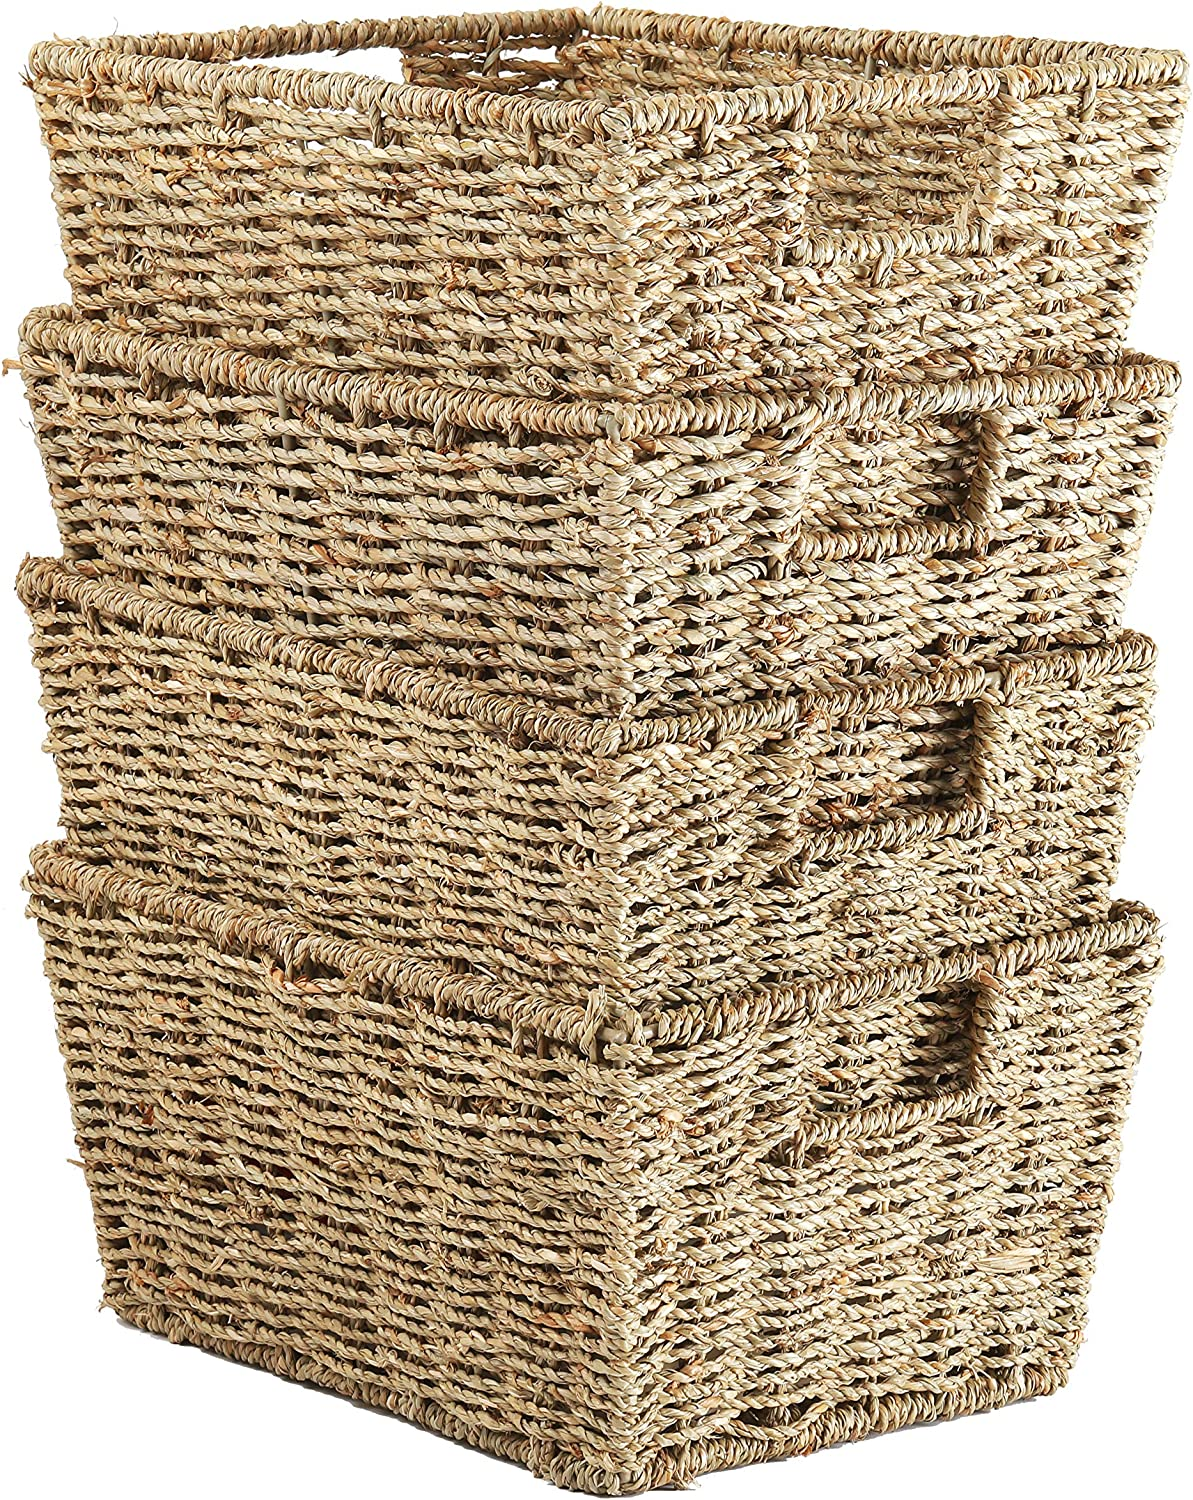 Welcare Set of 4 Seagrass Storage Baskets with Insert Handles Ideal for Home and Bathroom Organization - 12(L) x 9(W) x 6(H) inches